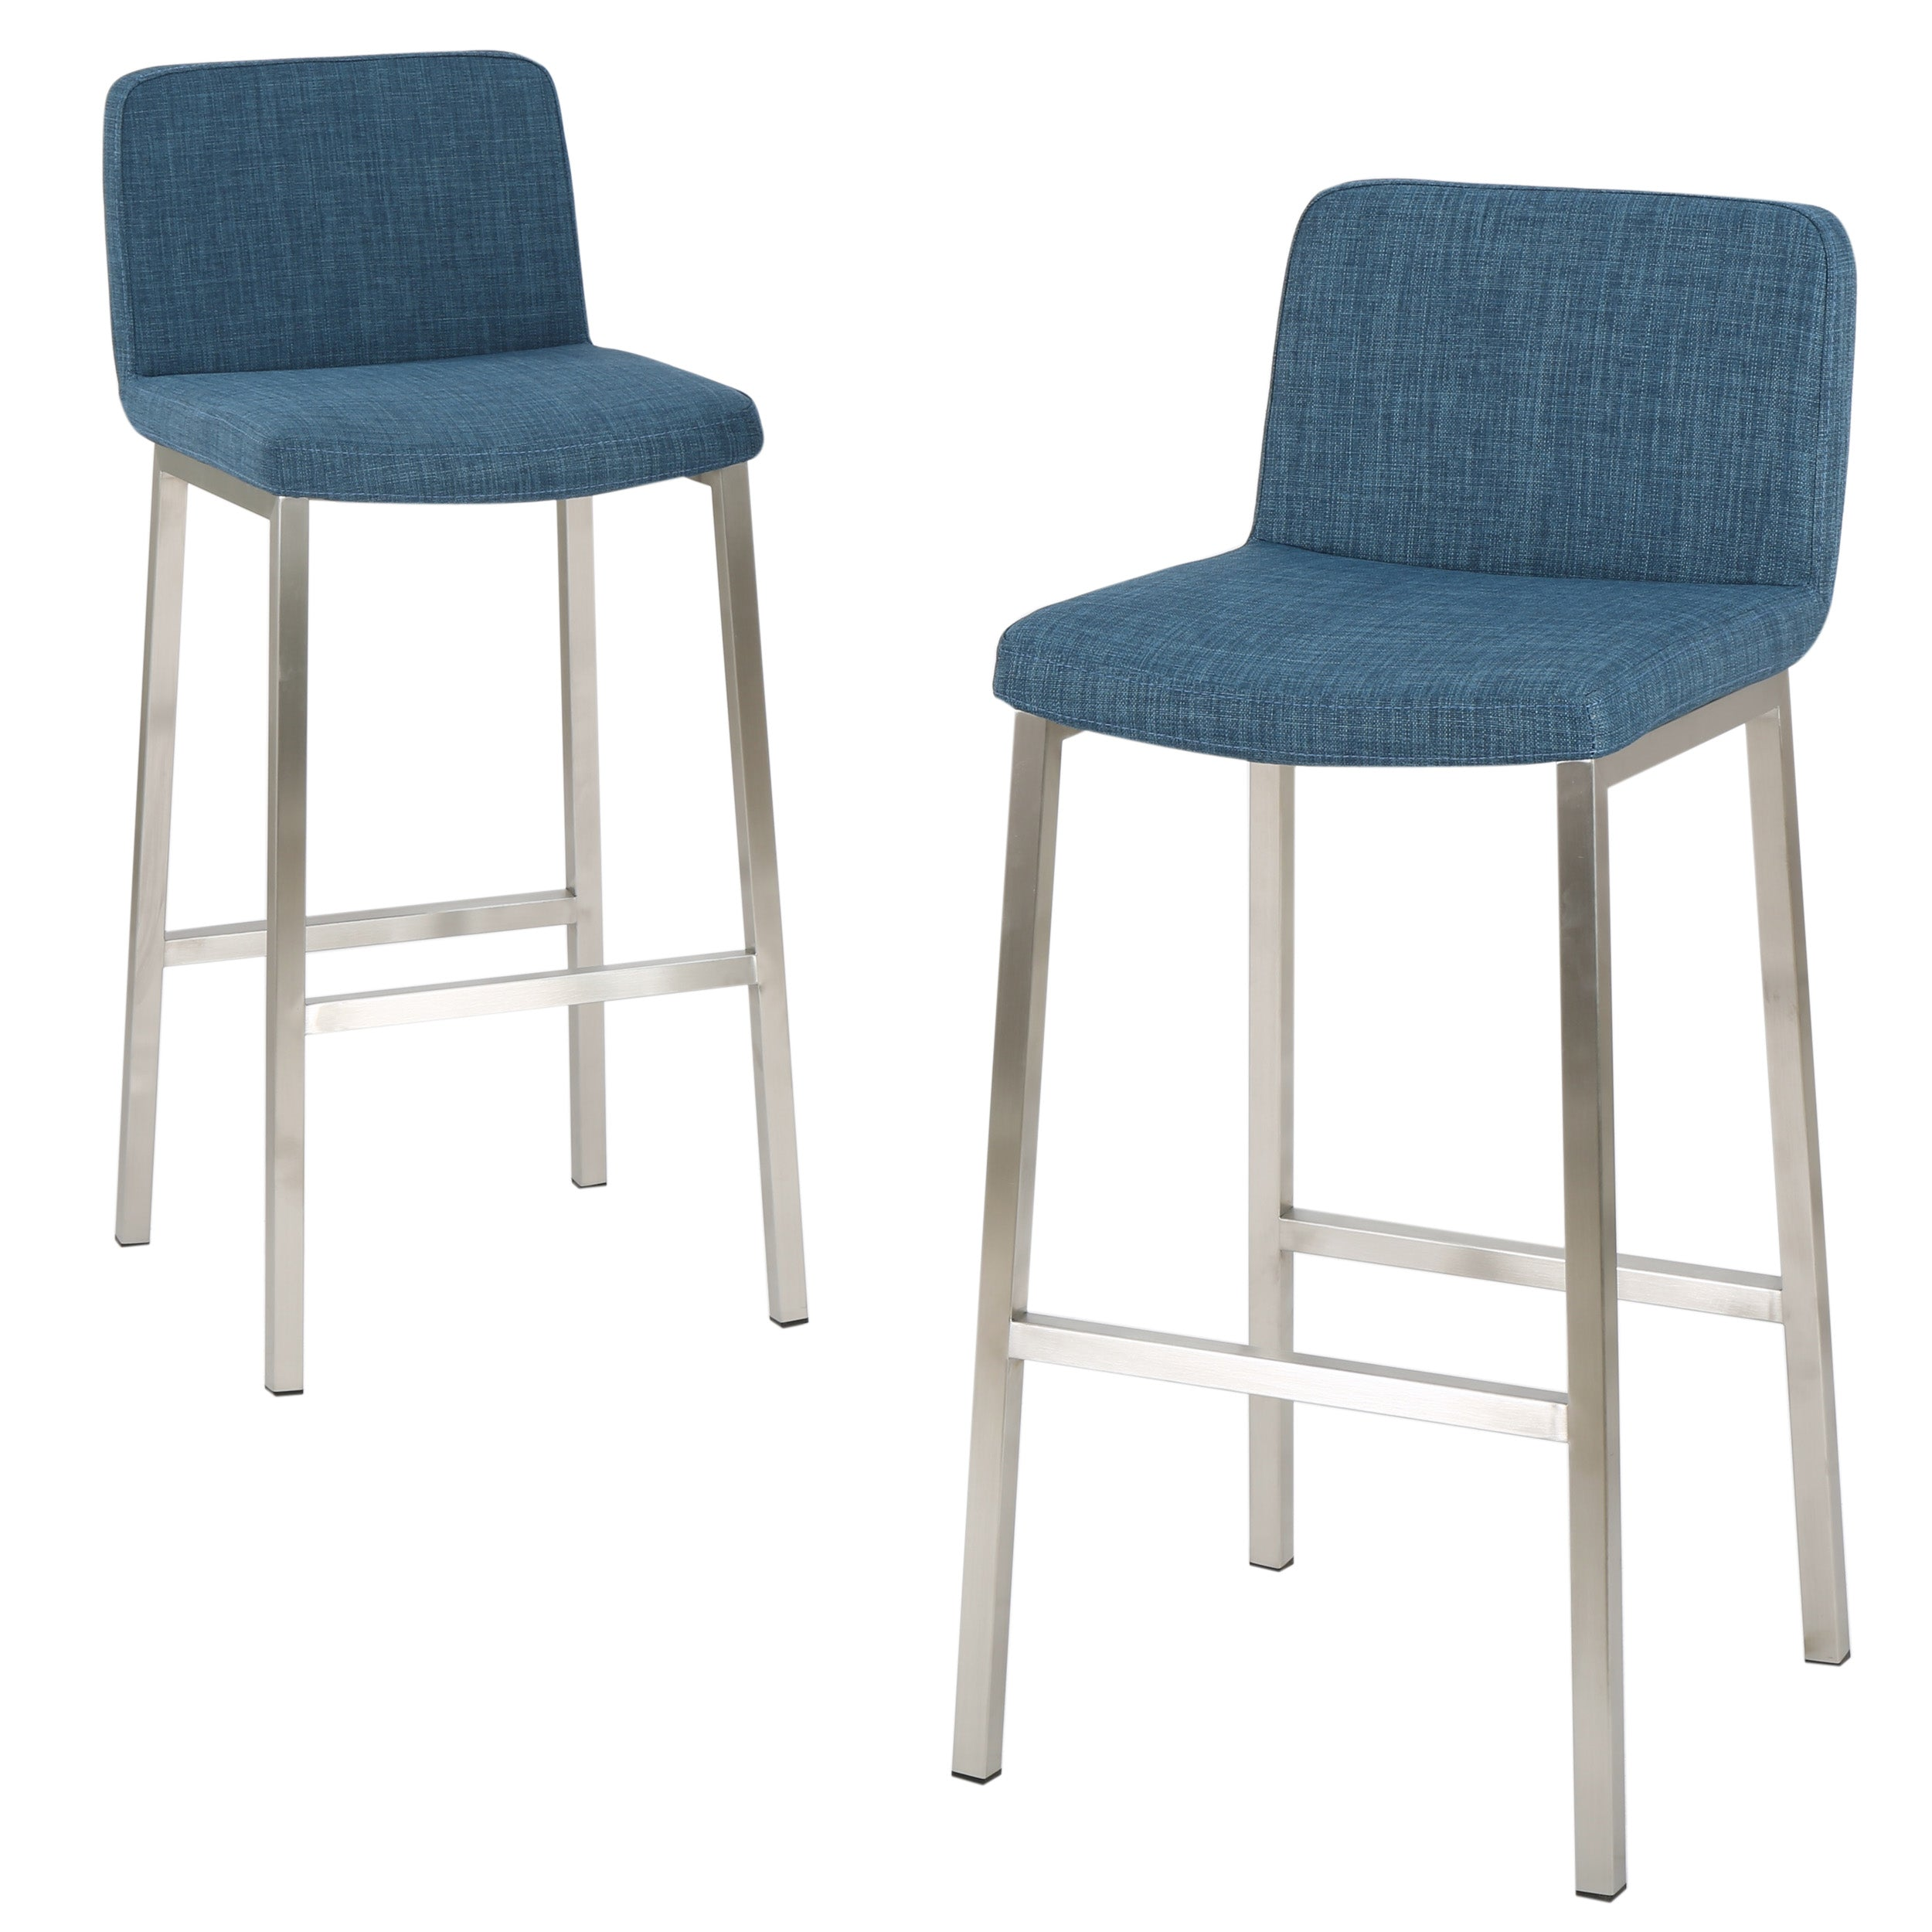 31 Inch Fantasia Fabric Barstool Set of 2